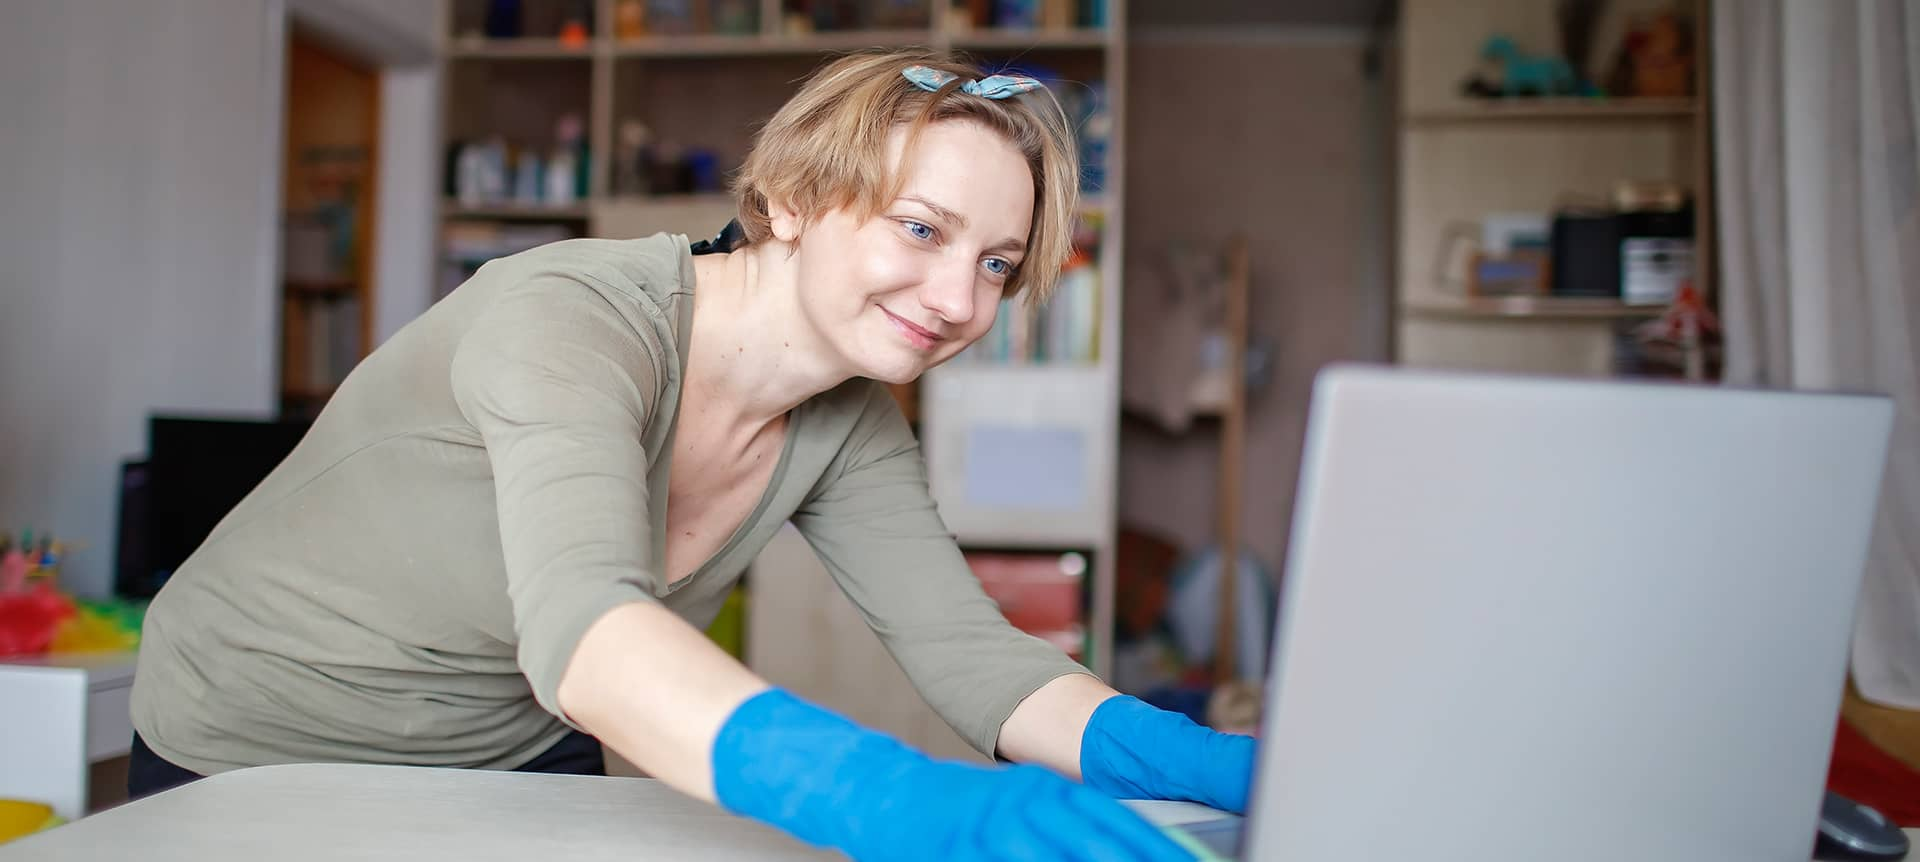 A female candidate working from home, trying to find the best background.